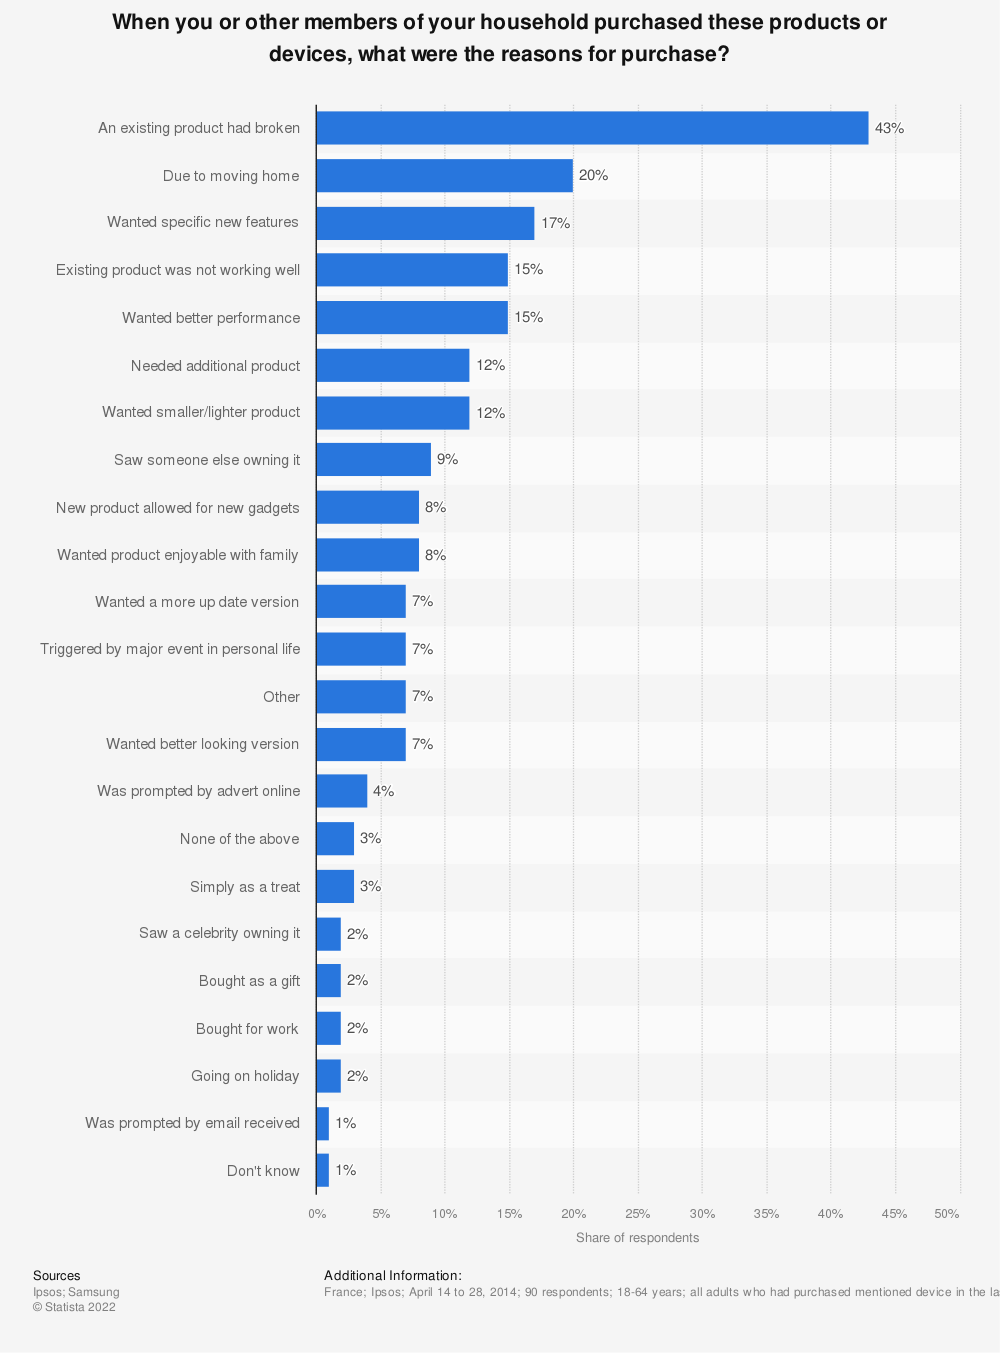 Statistic: When you or other members of your household purchased these products or devices, what were the reasons for purchase? | Statista